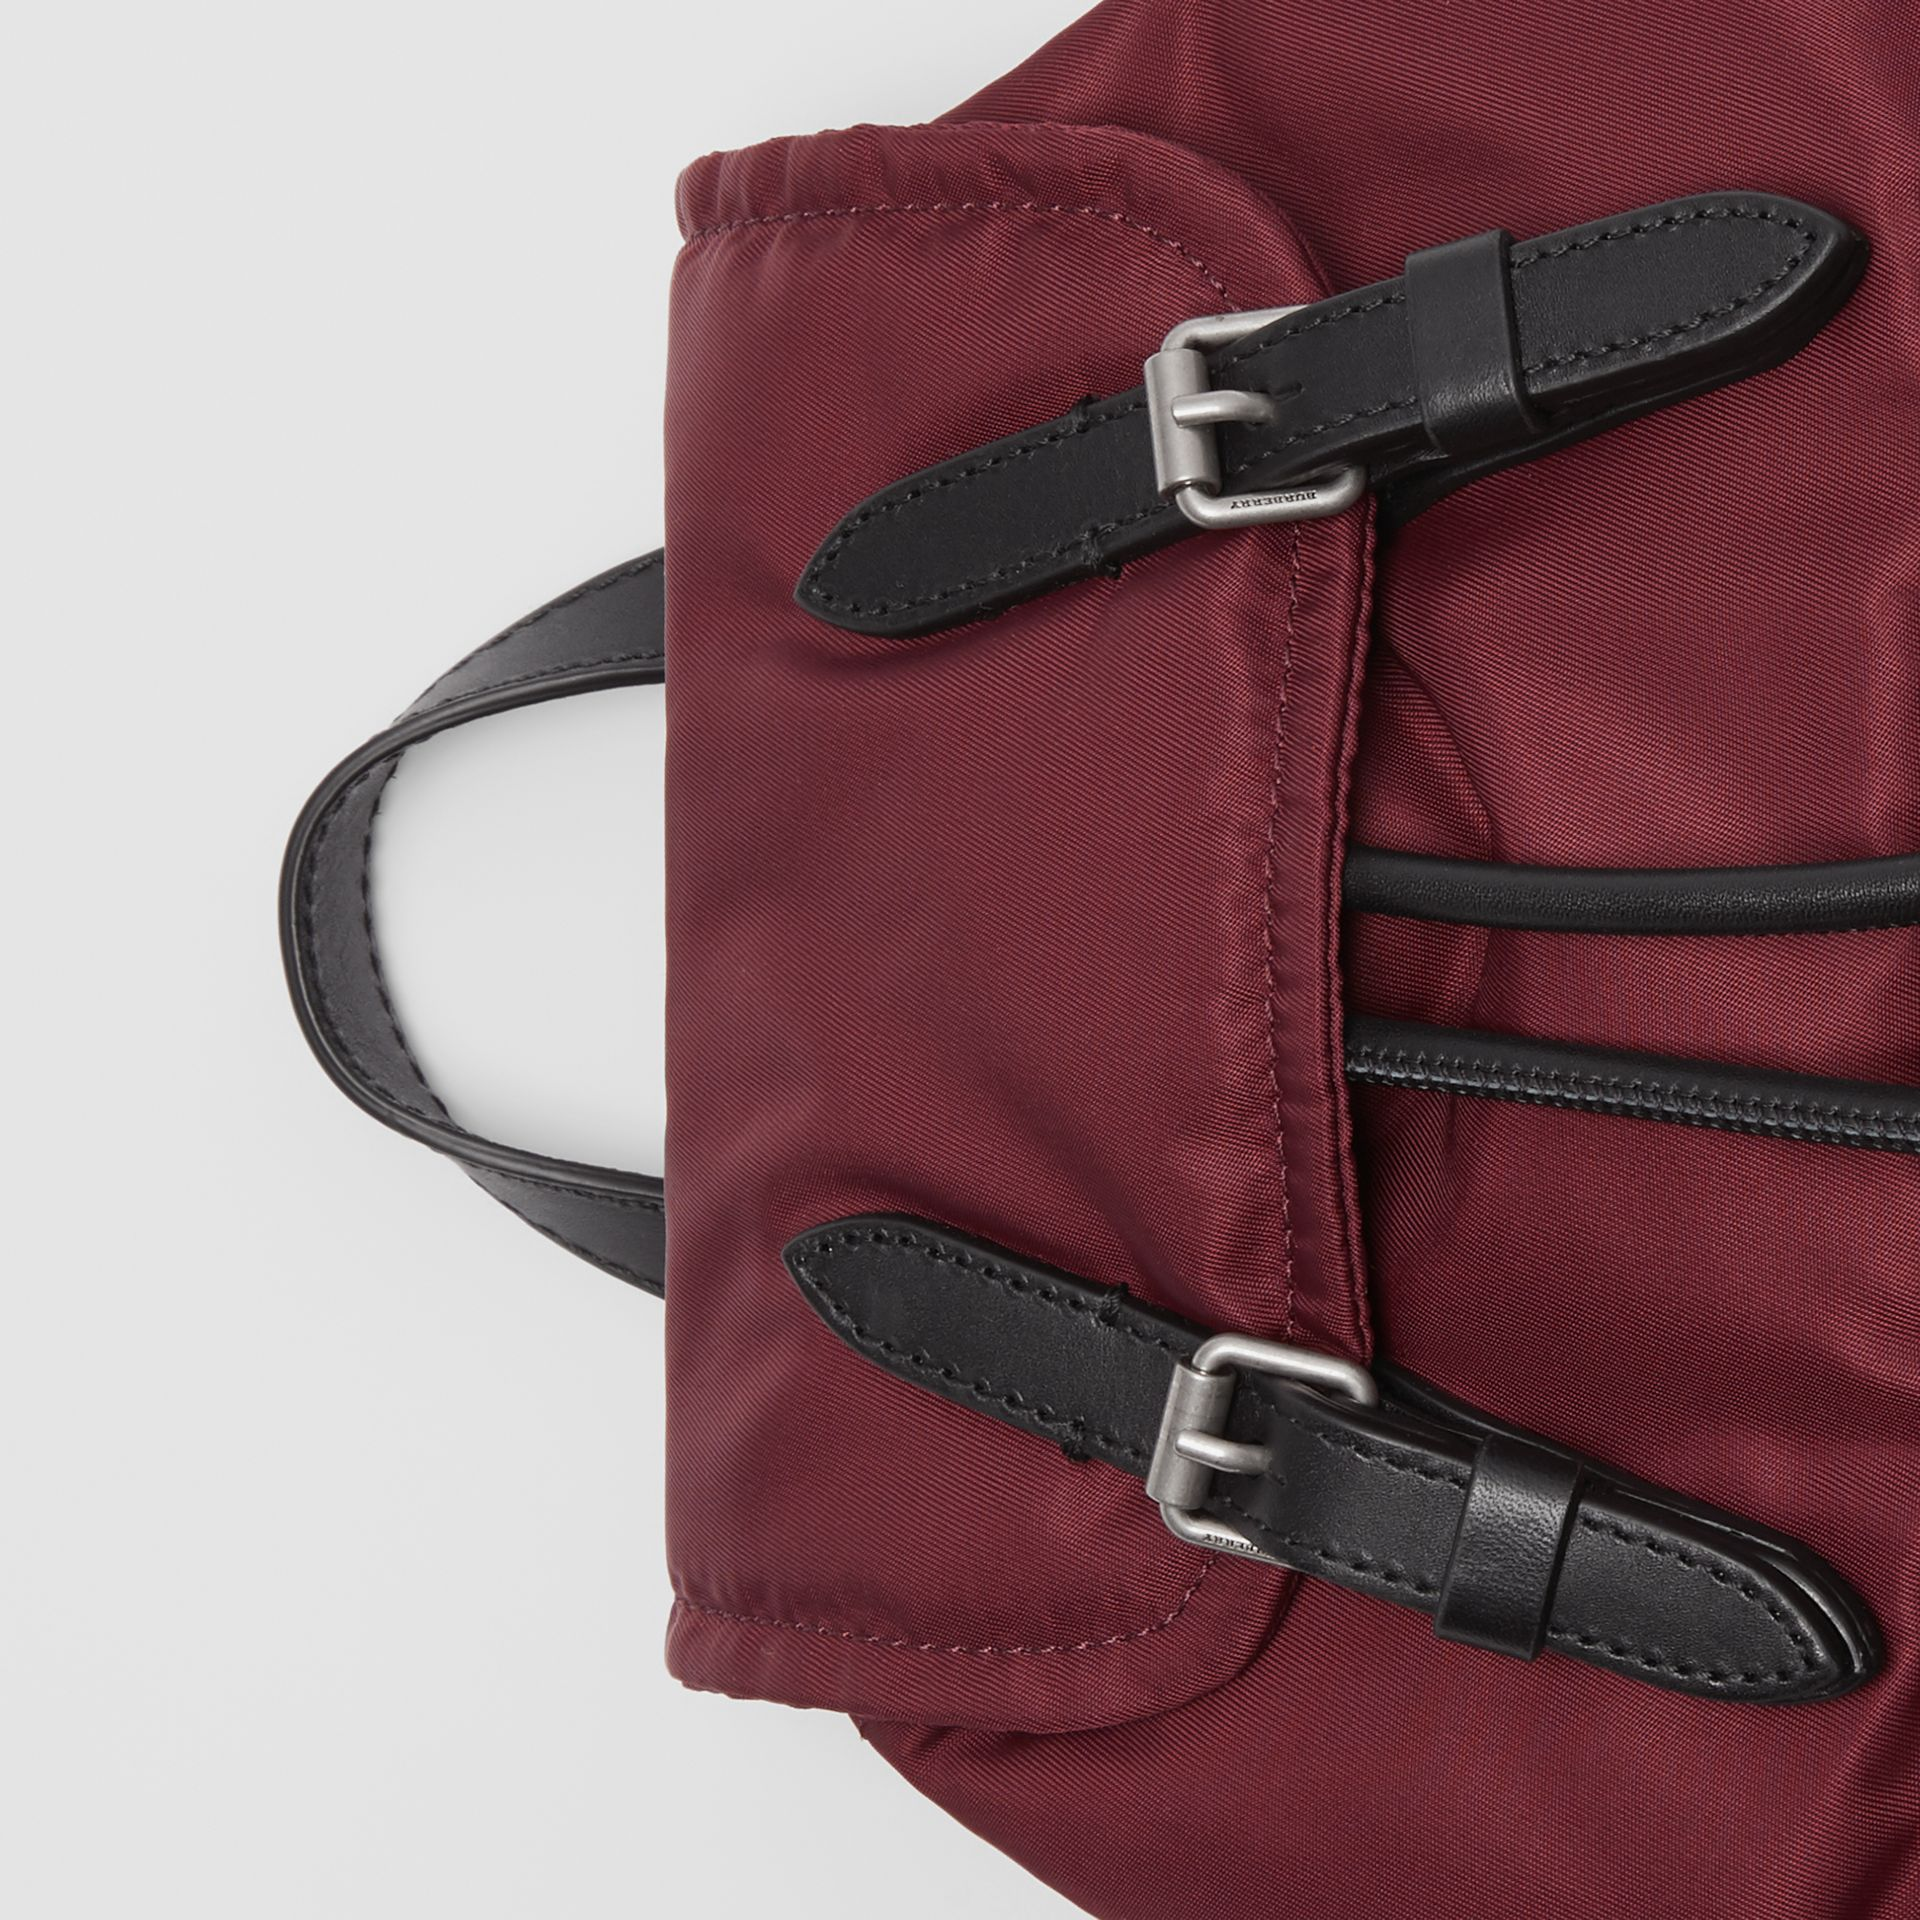 The Small Crossbody Rucksack in Puffer Nylon in Burgundy Red - Women | Burberry Singapore - gallery image 1